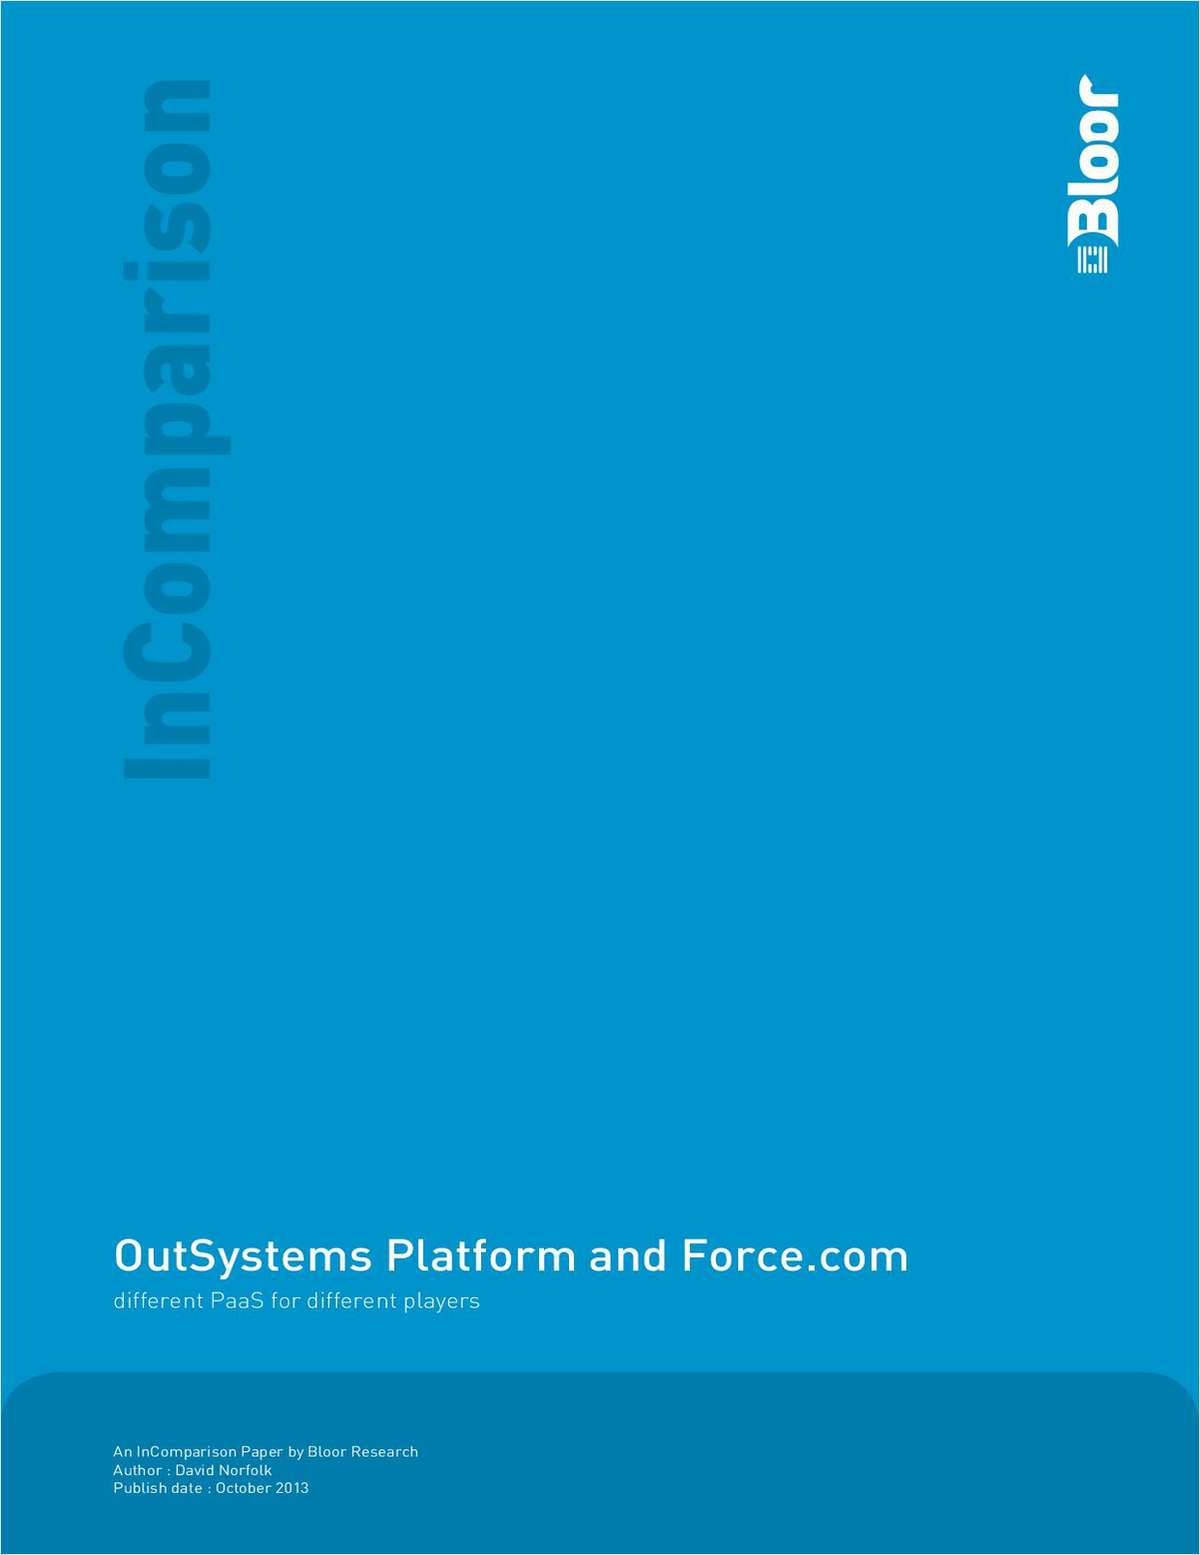 Comparing Cloud Platforms: Force.com and OutSystems